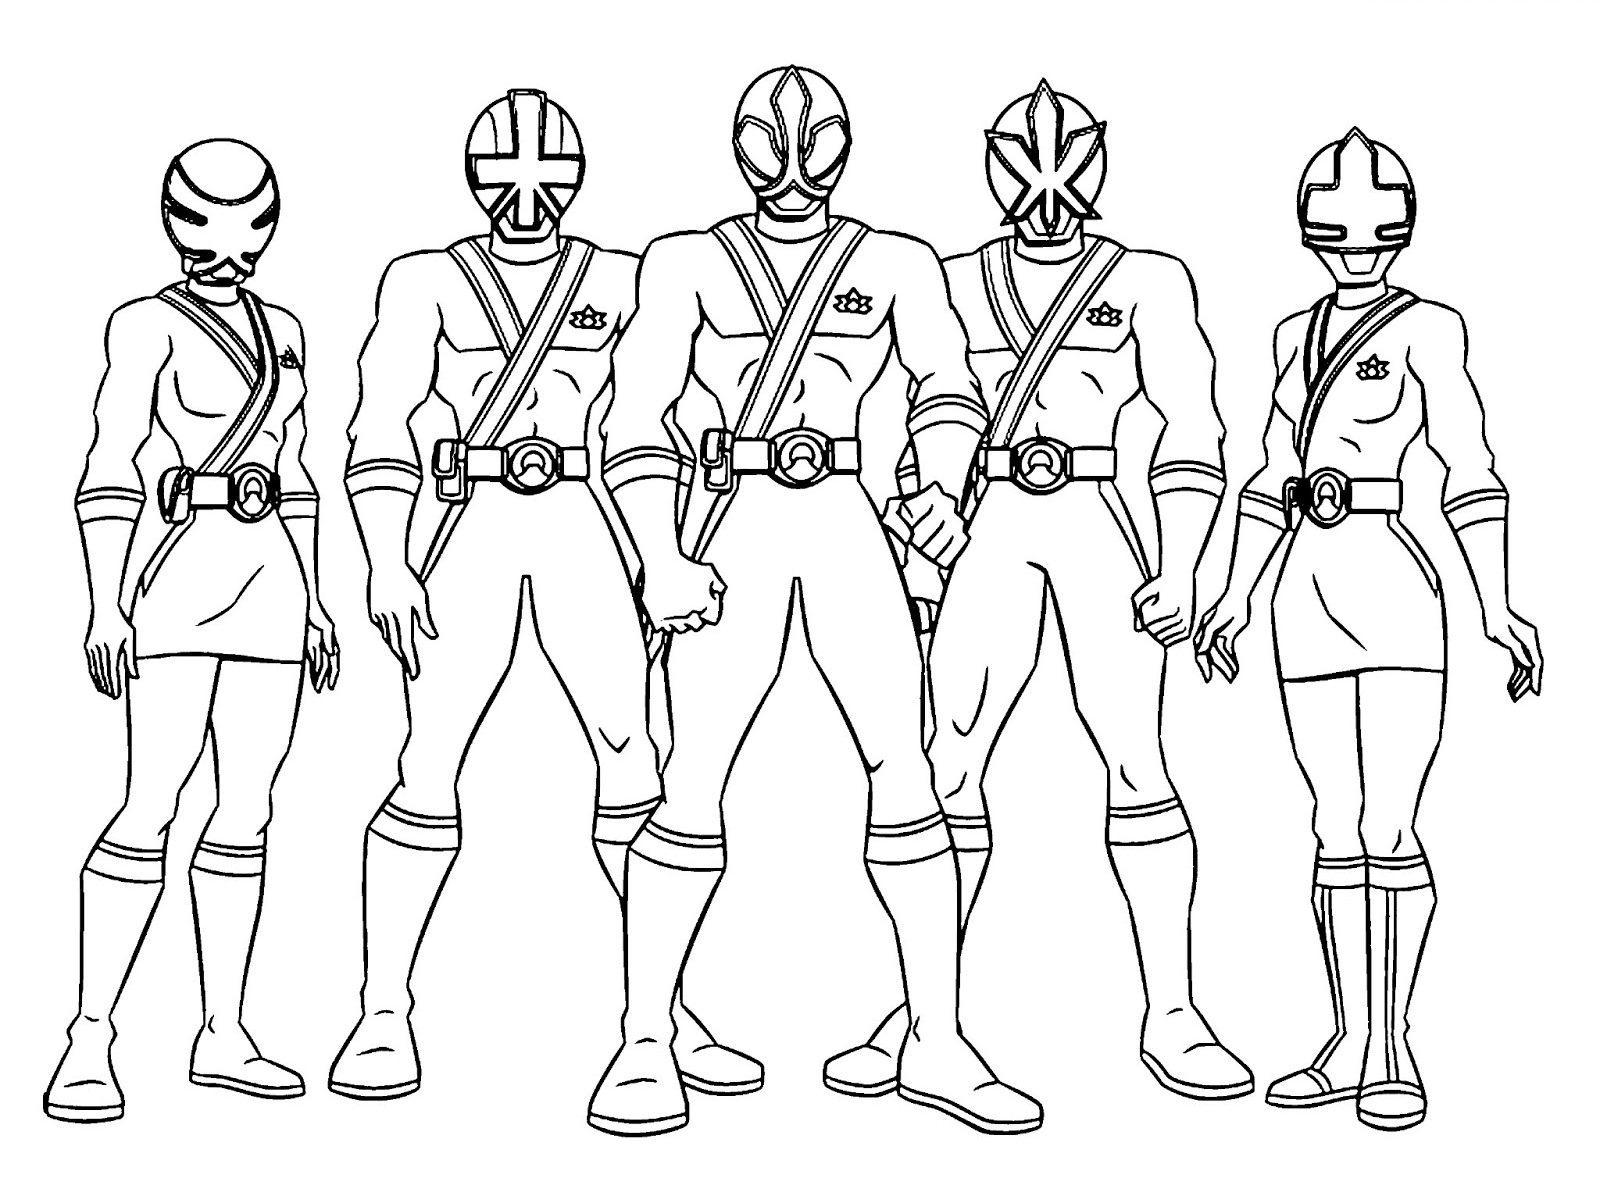 Power Rangers Coloring Pages 2020: Best, Cool, Funny